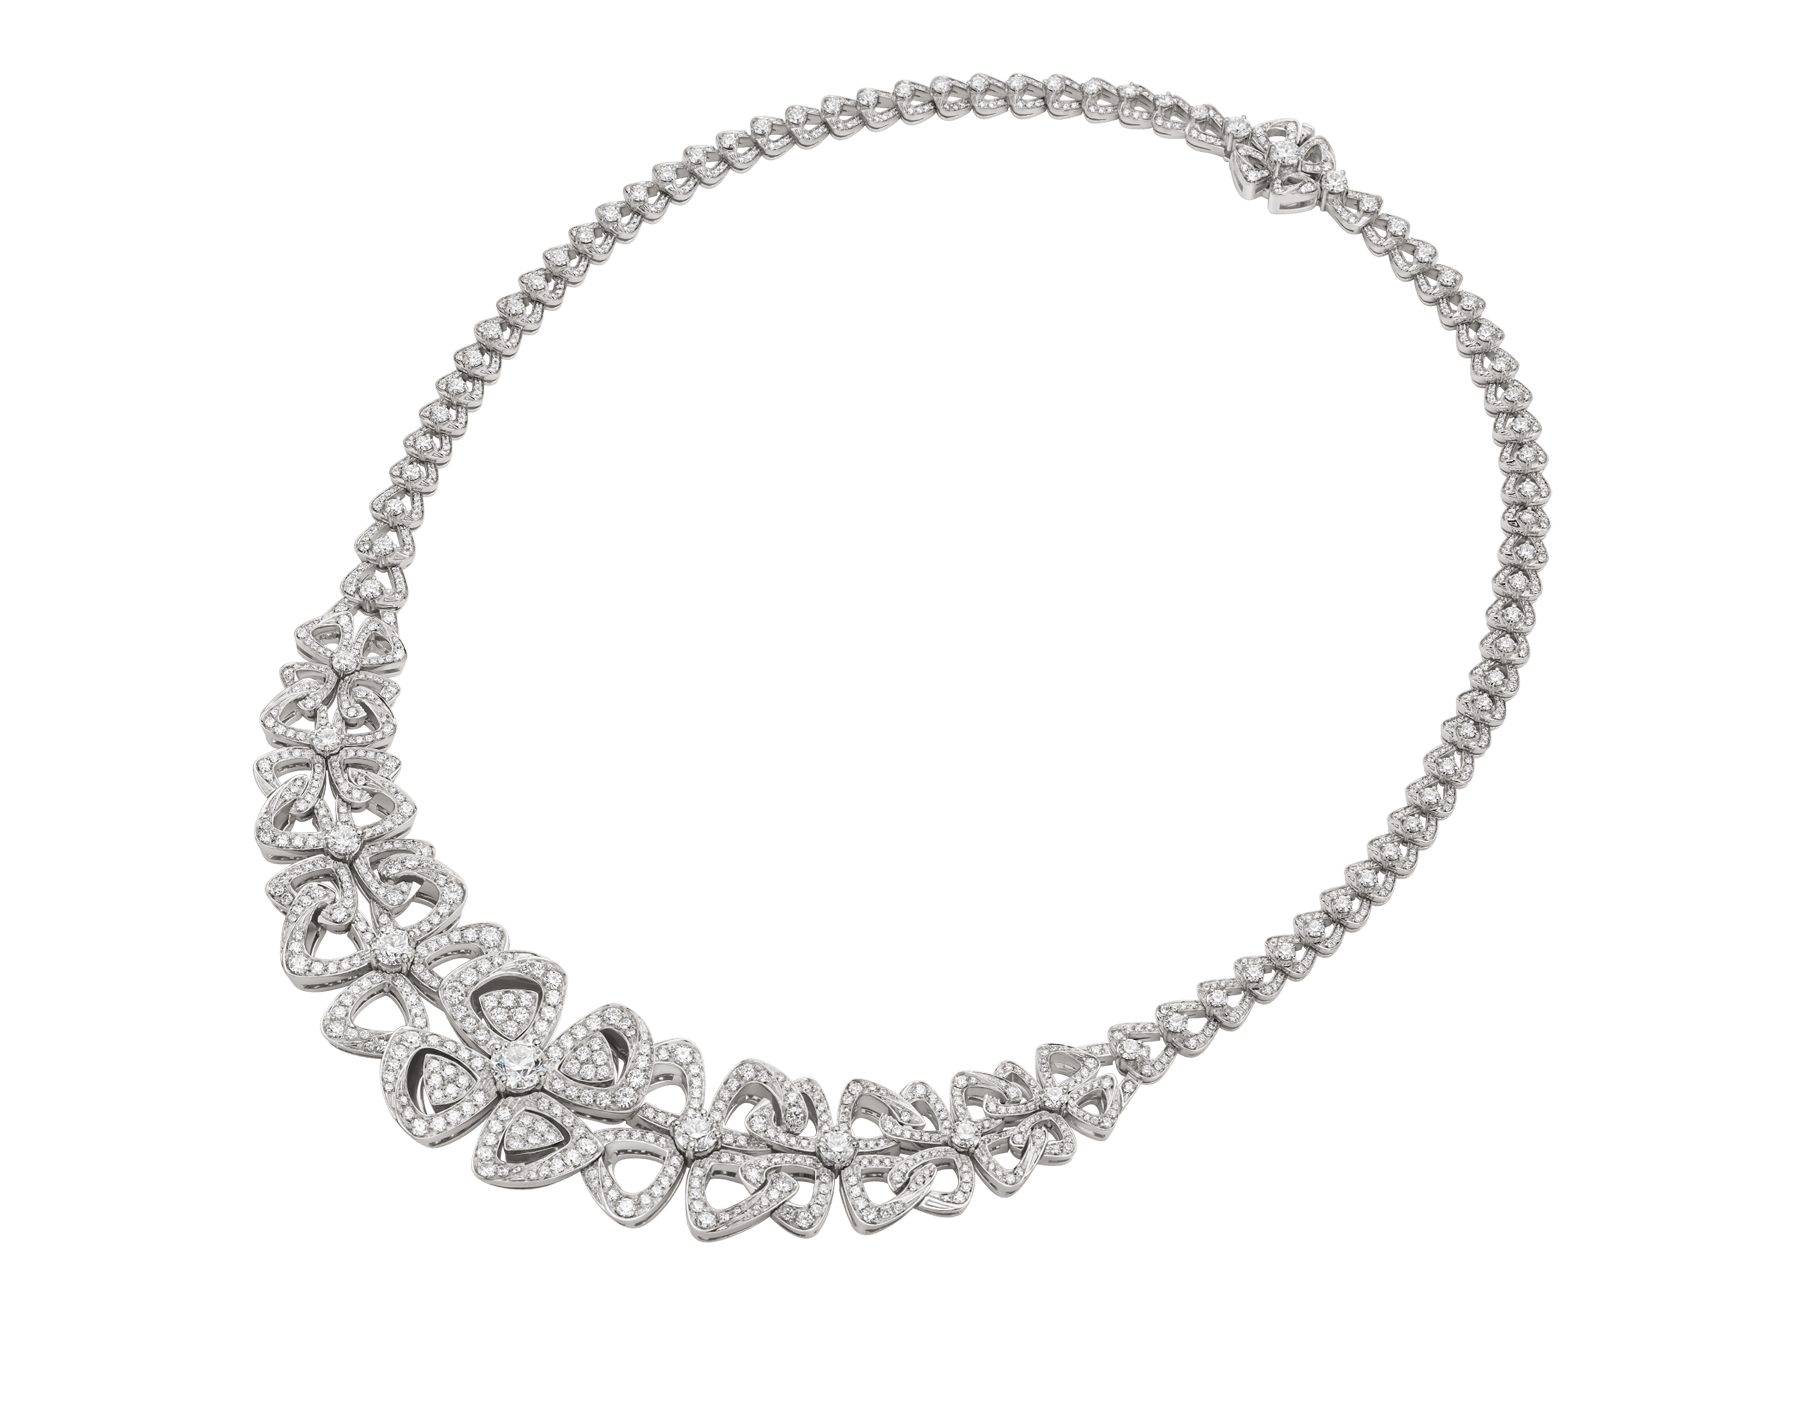 Fiorever 18 kt white gold necklace set with round brilliant-cut diamonds and pavé diamonds. 356934 image 2